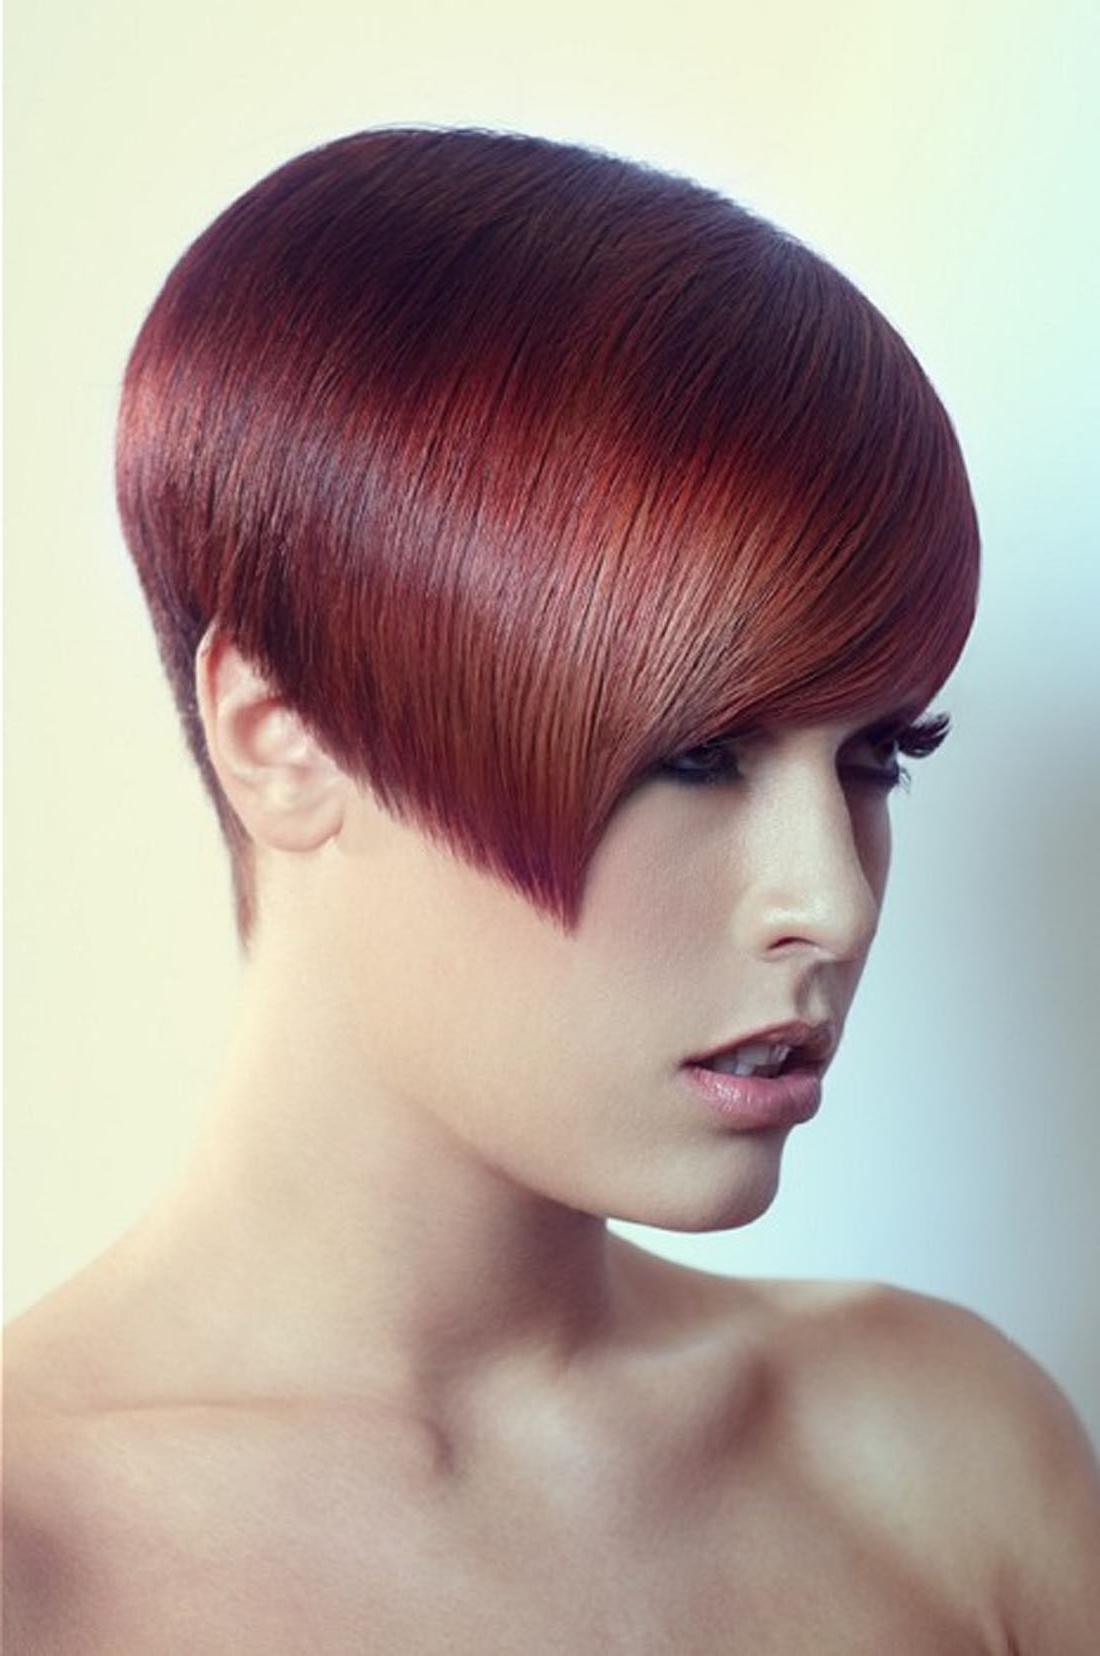 Red Hair Colour Short Hairstyles – Hairstyle For Women & Man Within Short Haircuts With Red Hair (View 24 of 25)